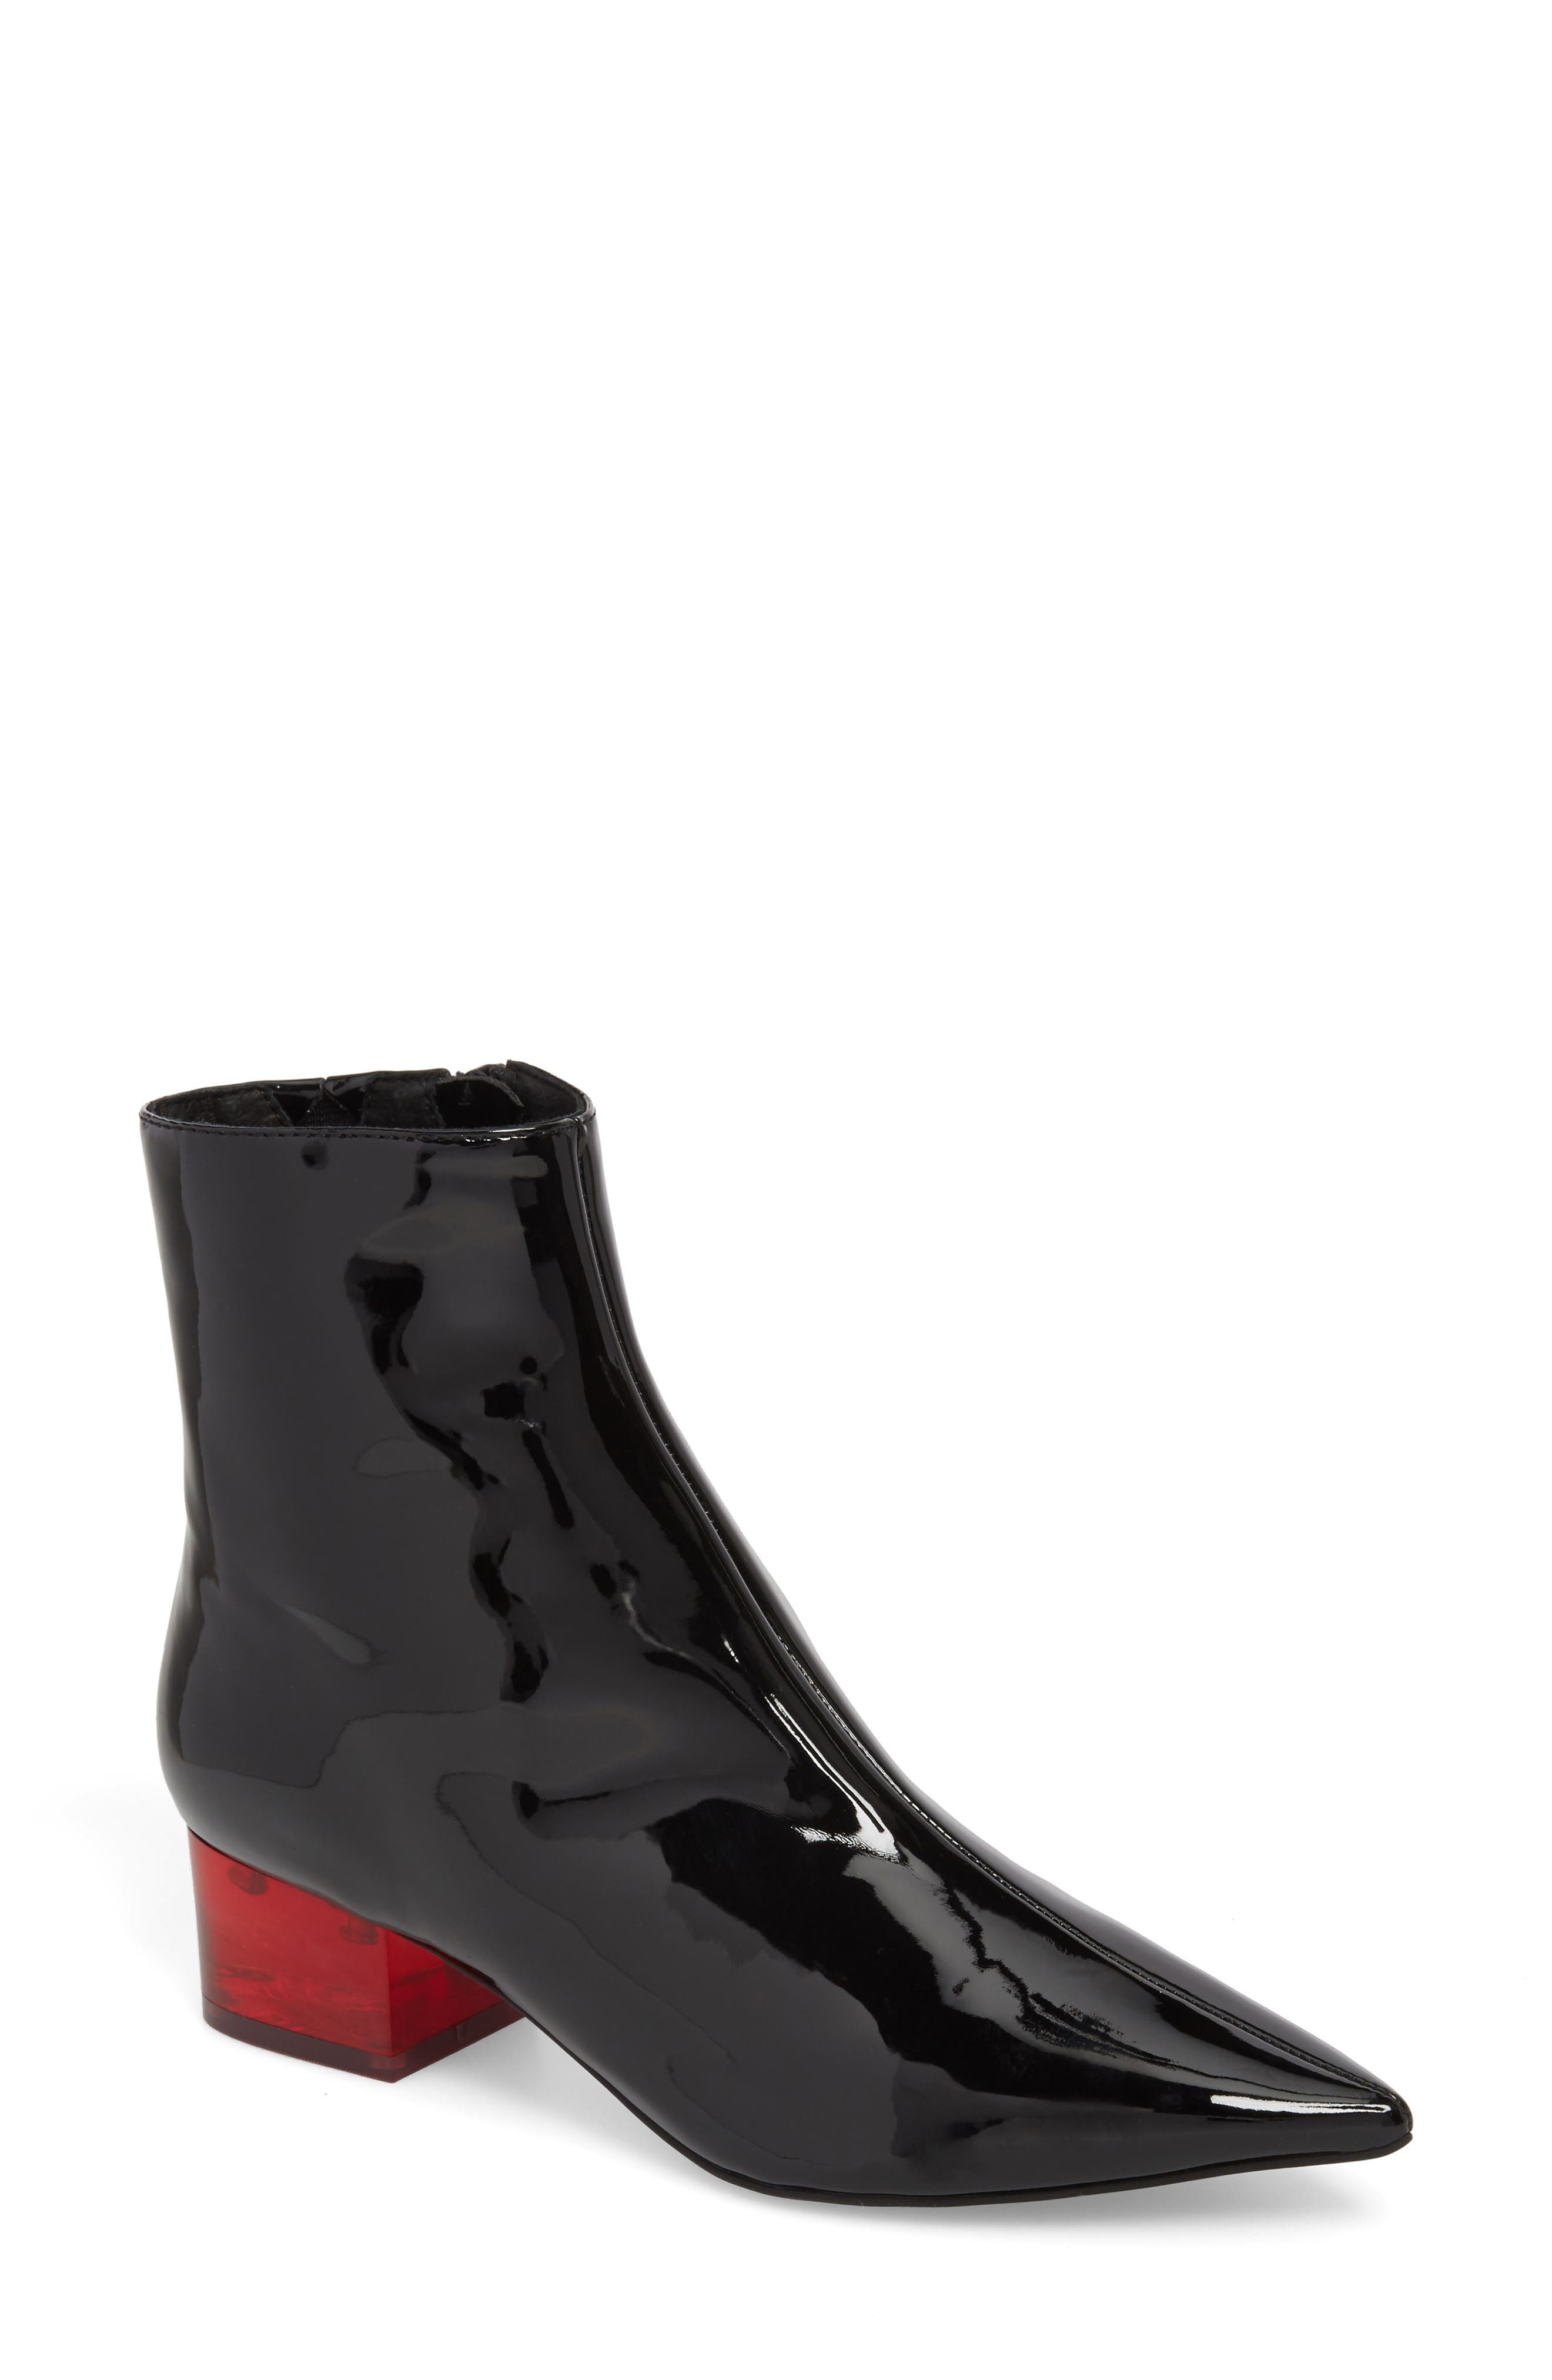 Luminous Statement Heel Bootie,                         Main,                         color, Black/ Red Patent Leather